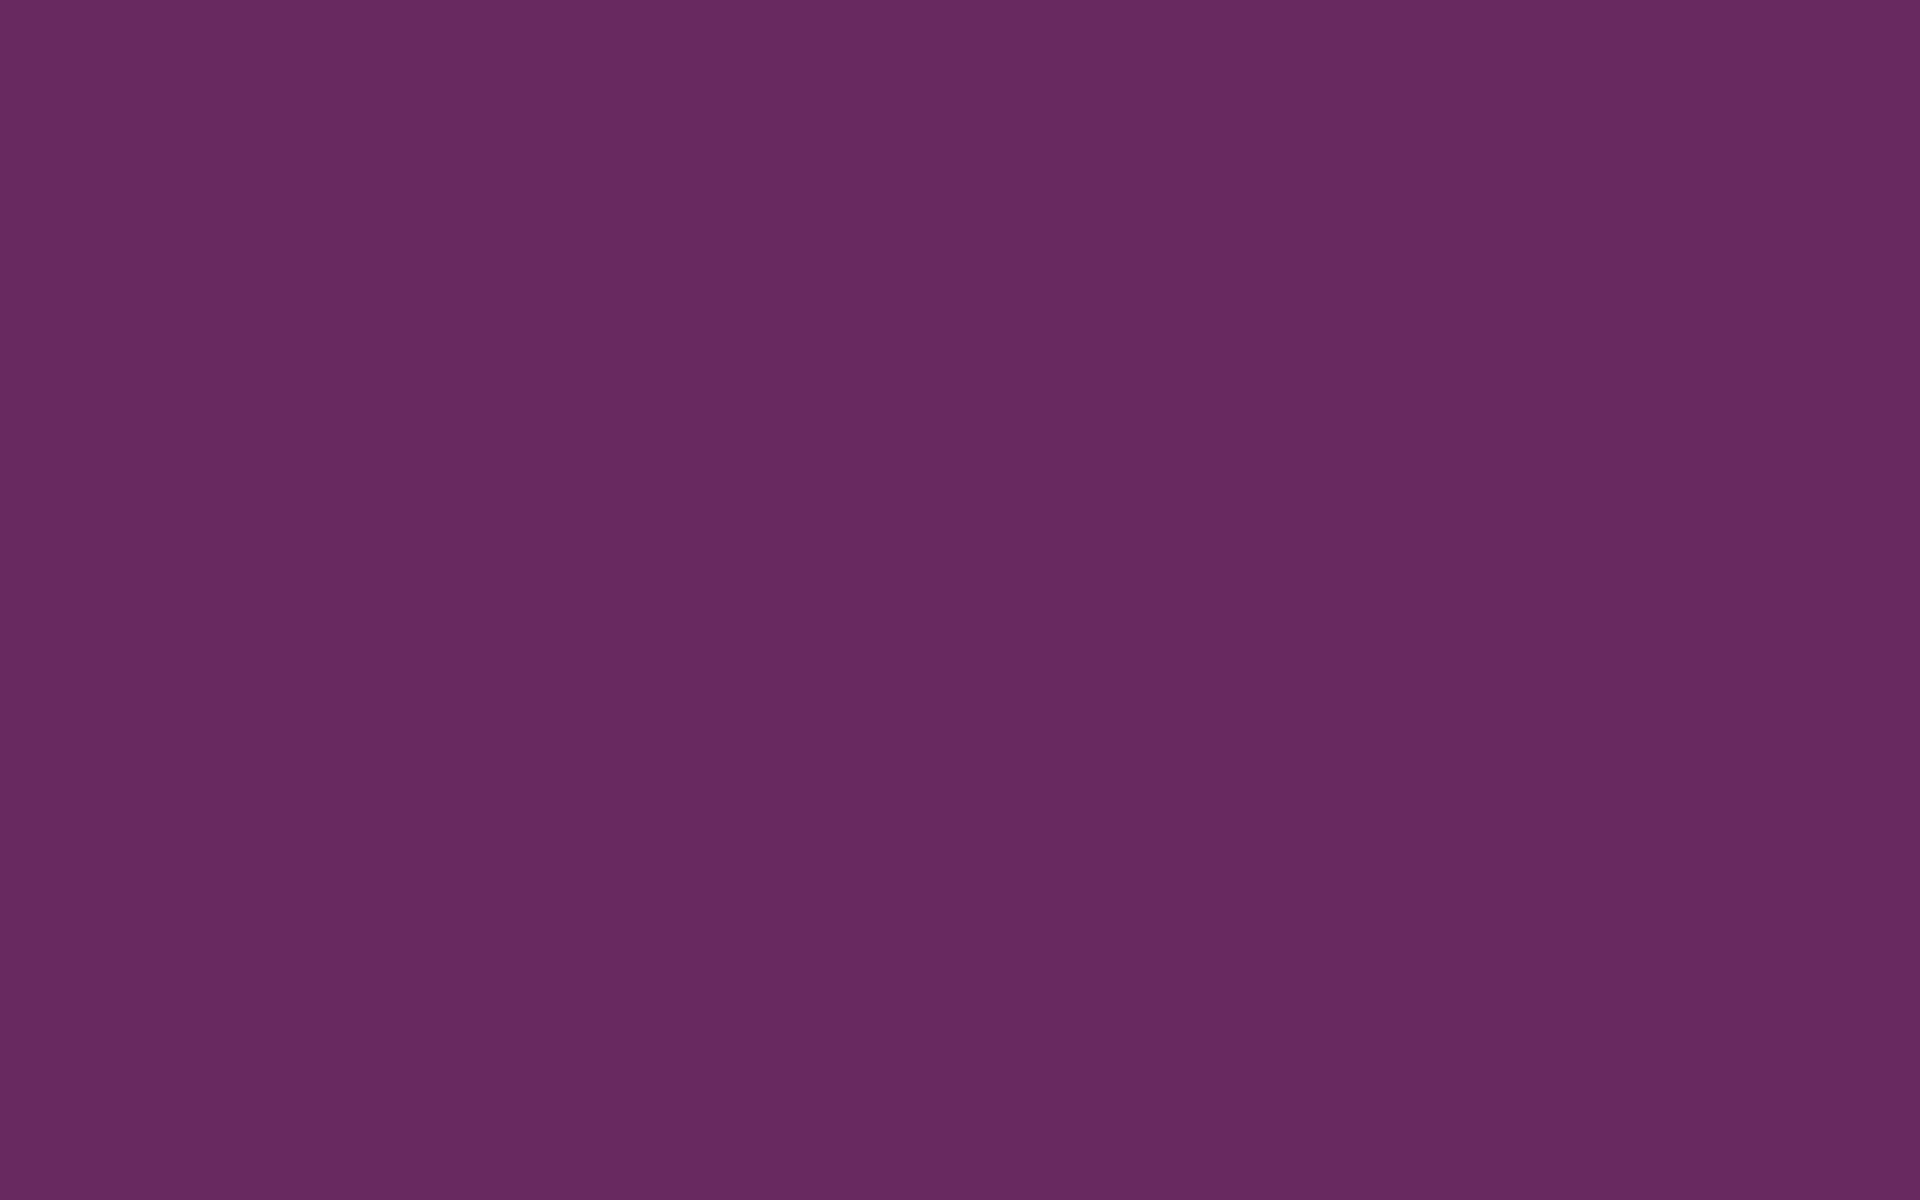 1920x1200 Palatinate Purple Solid Color Background